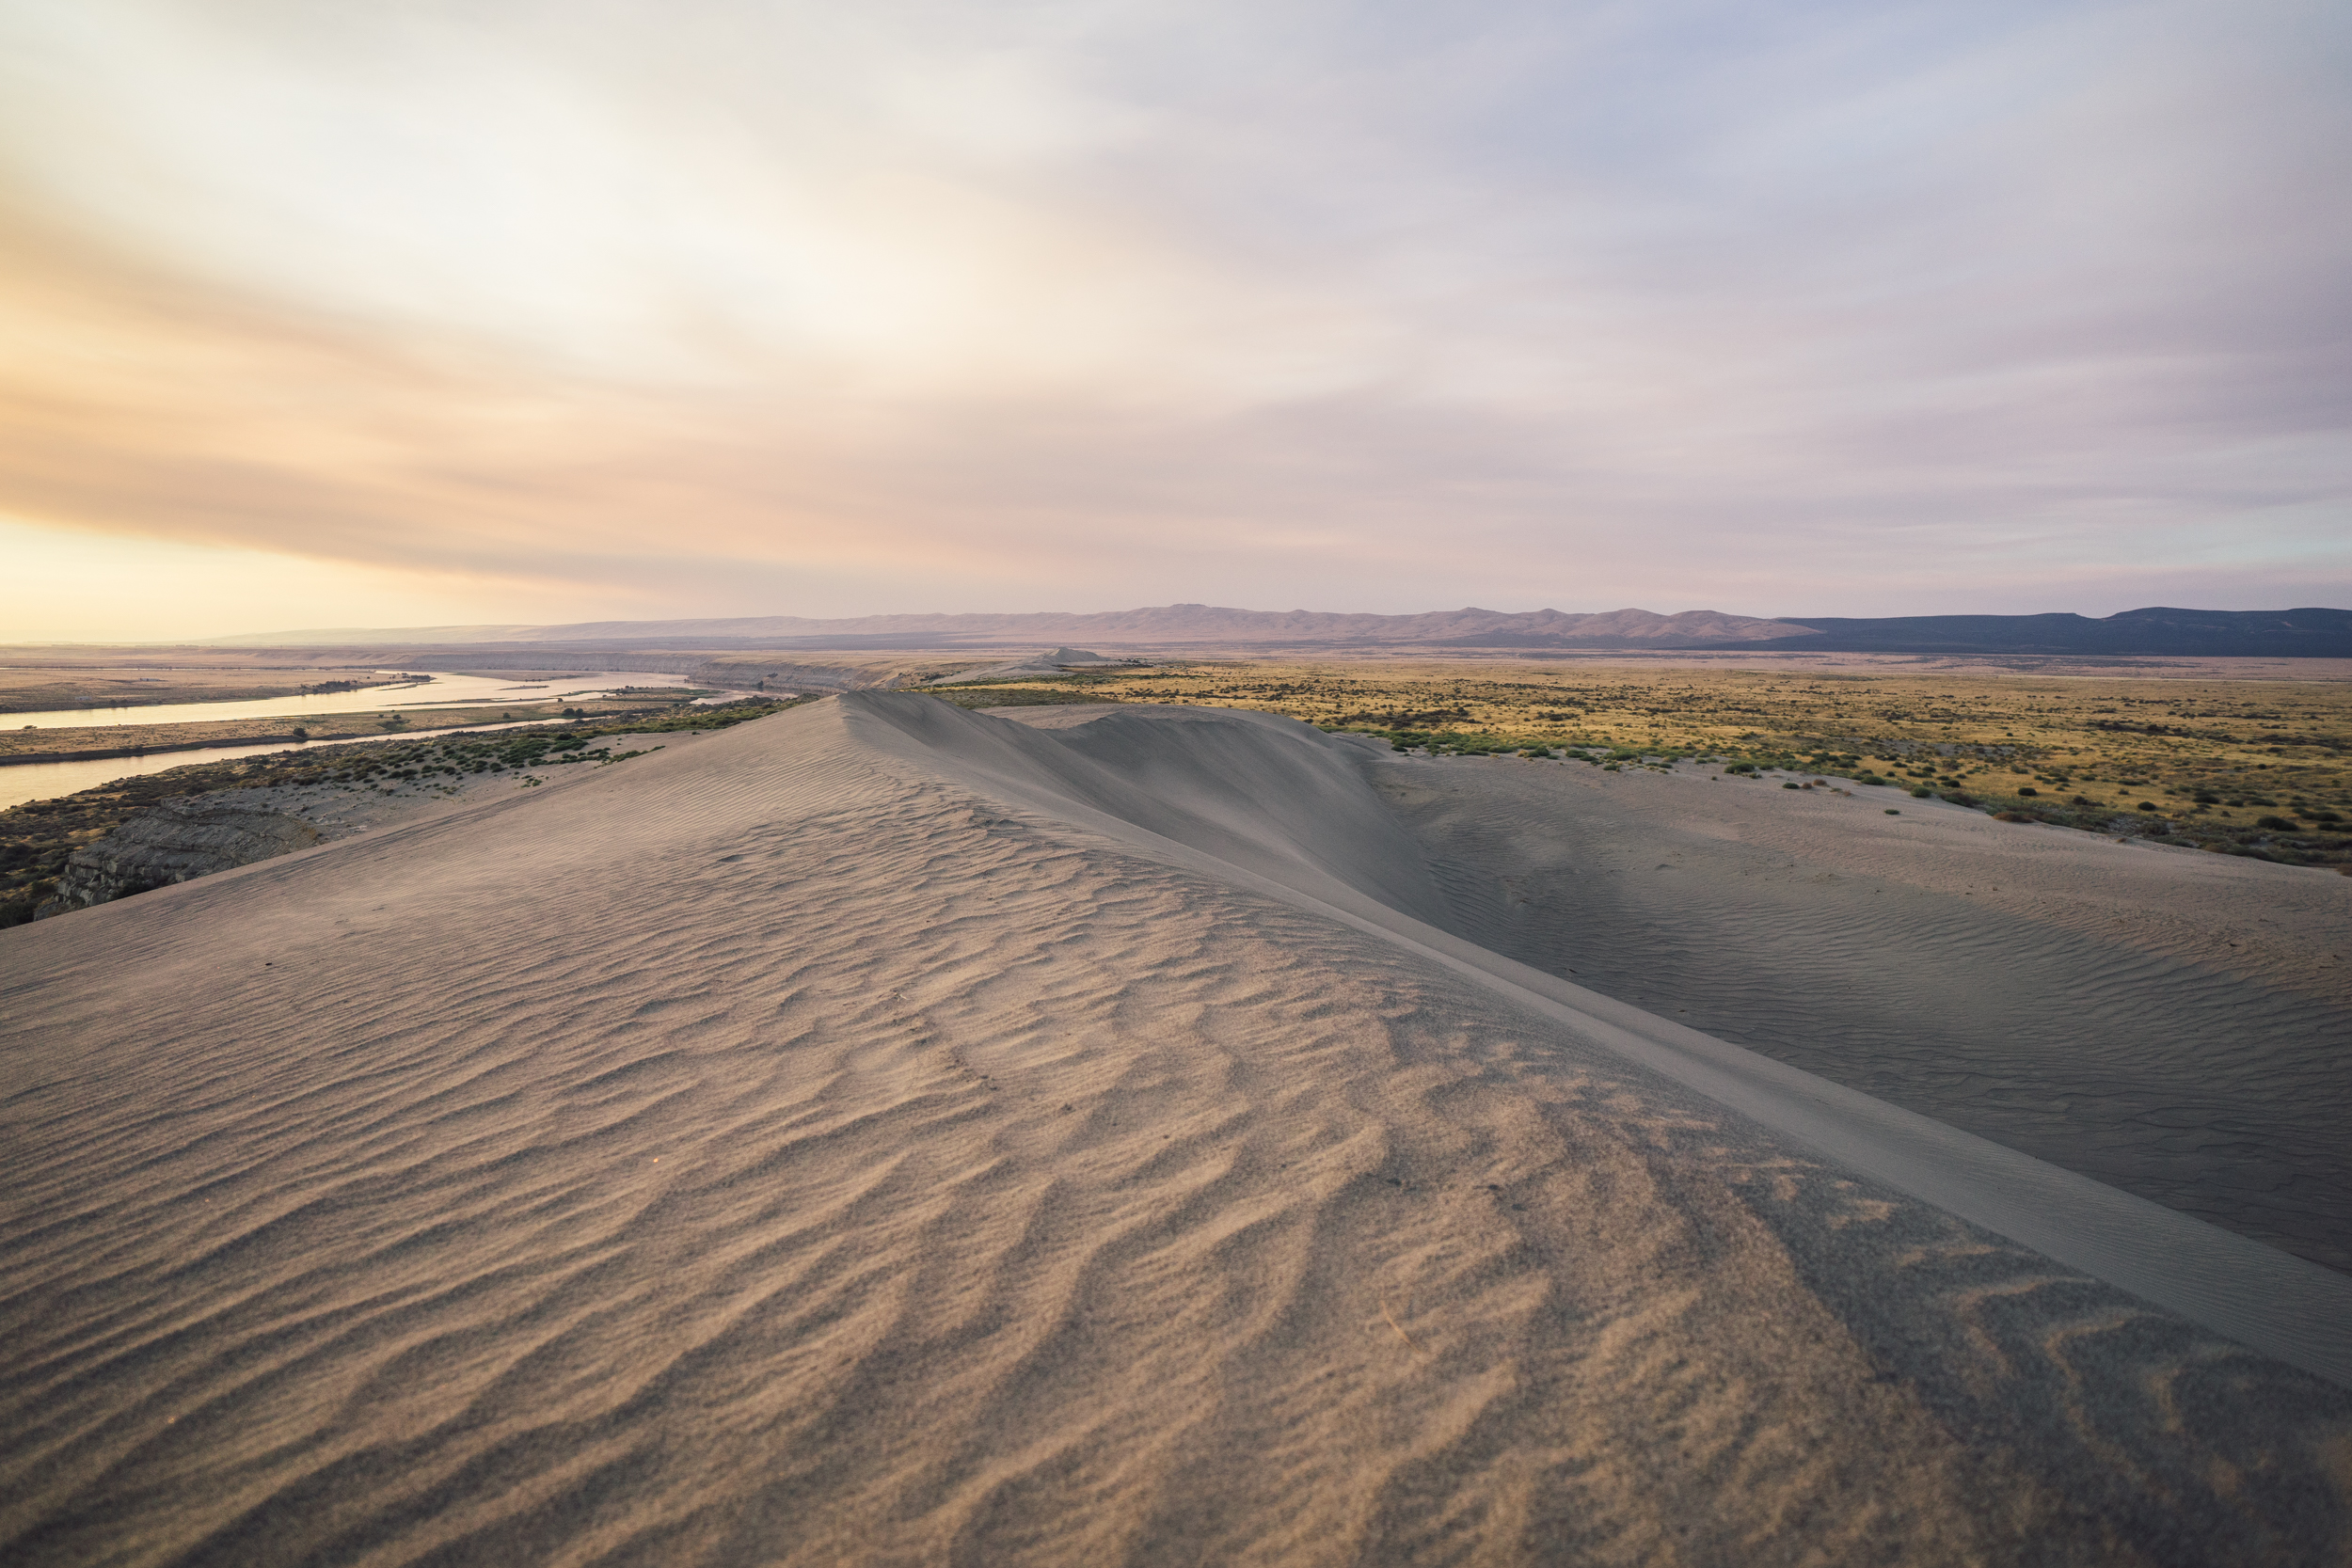 Sun sets over the dunes in Hanford Reach National Monument, Washington